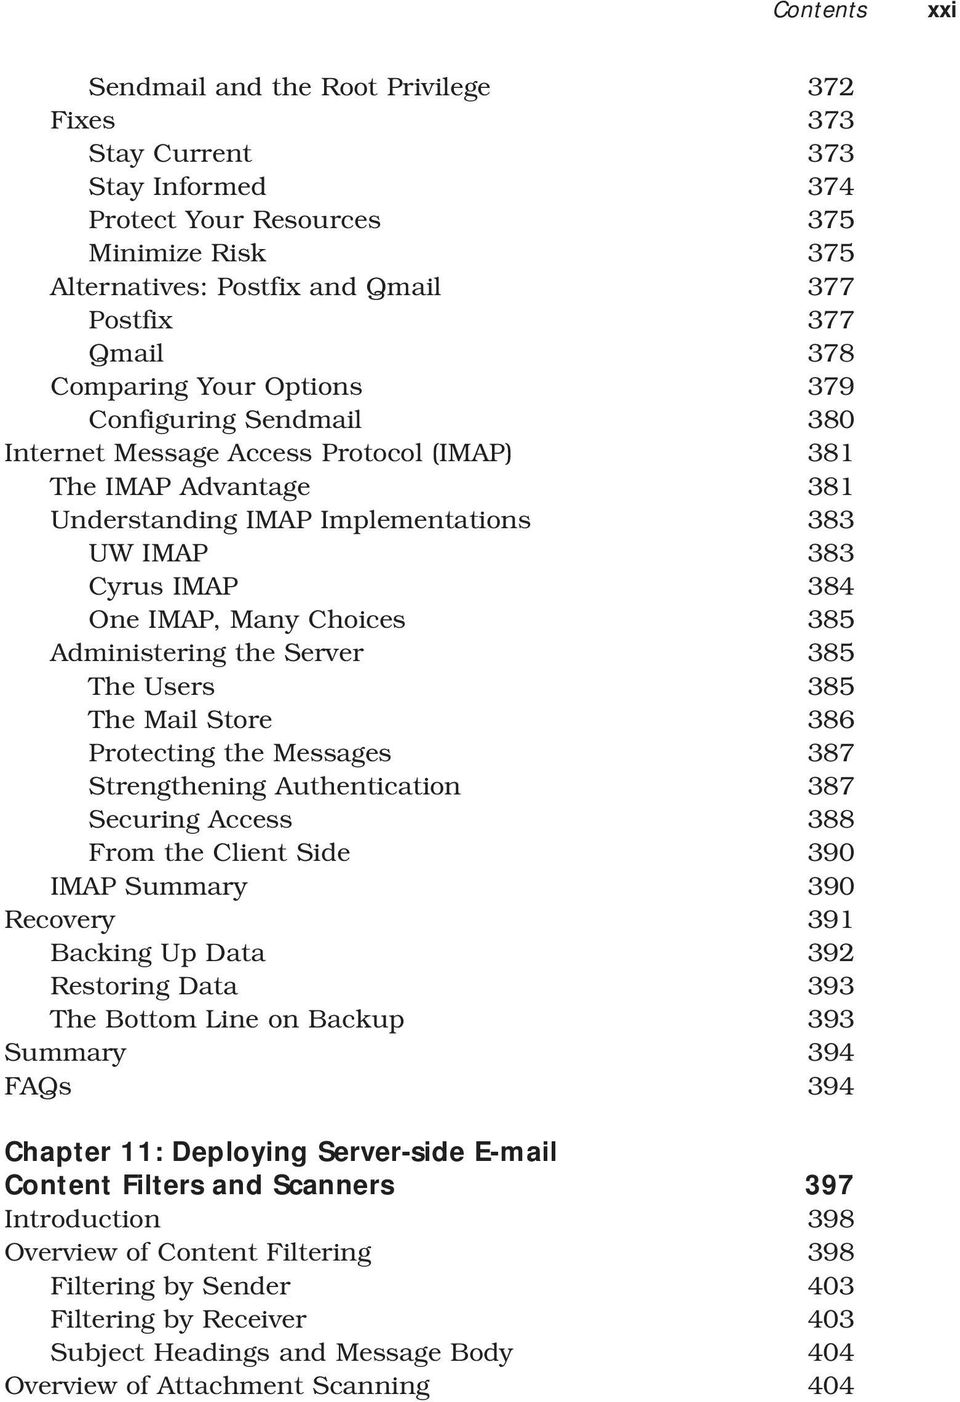 Choices 385 Administering the Server 385 The Users 385 The Mail Store 386 Protecting the Messages 387 Strengthening Authentication 387 Securing Access 388 From the Client Side 390 IMAP Summary 390